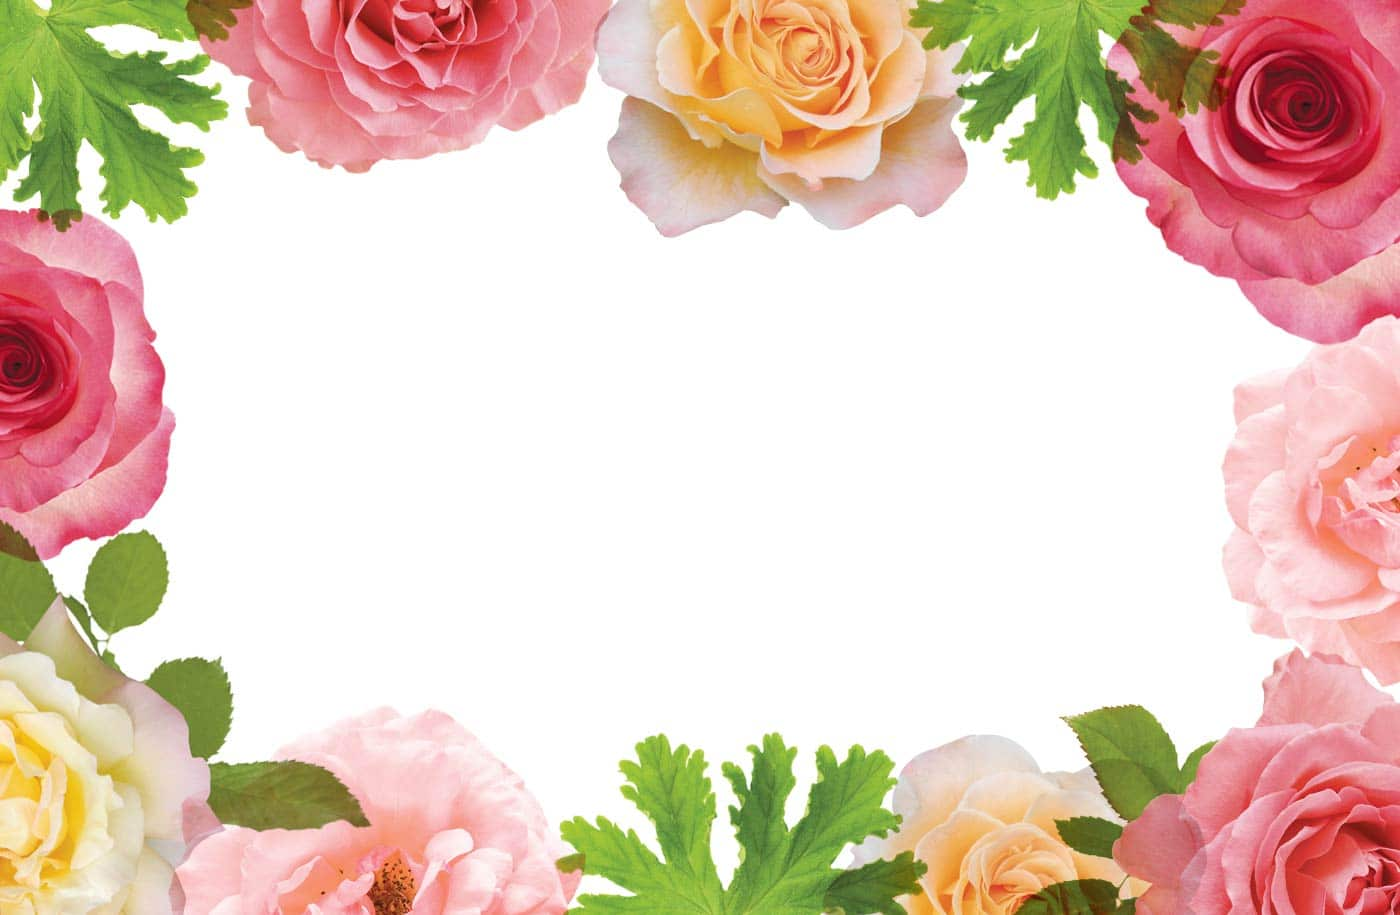 bath-and-body-rose-banner